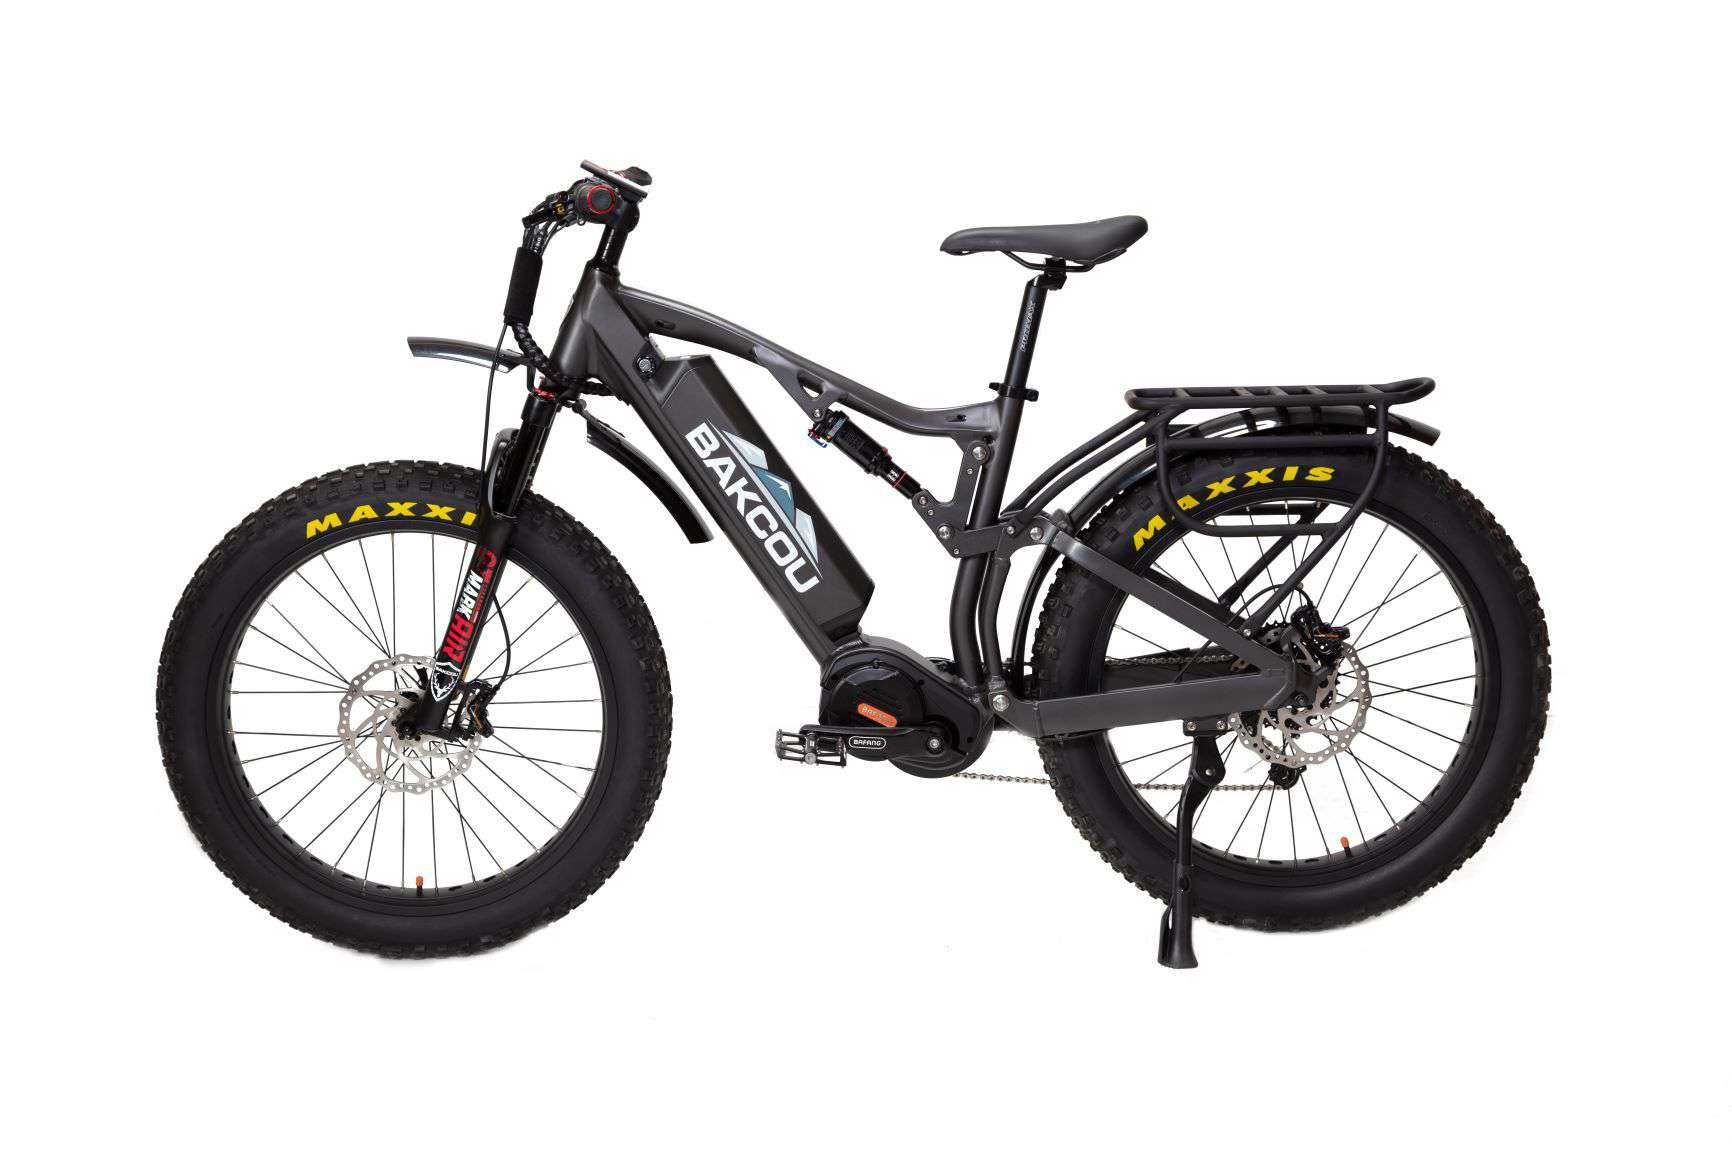 BAKCOU Storm G2 Electric Hunting Bike